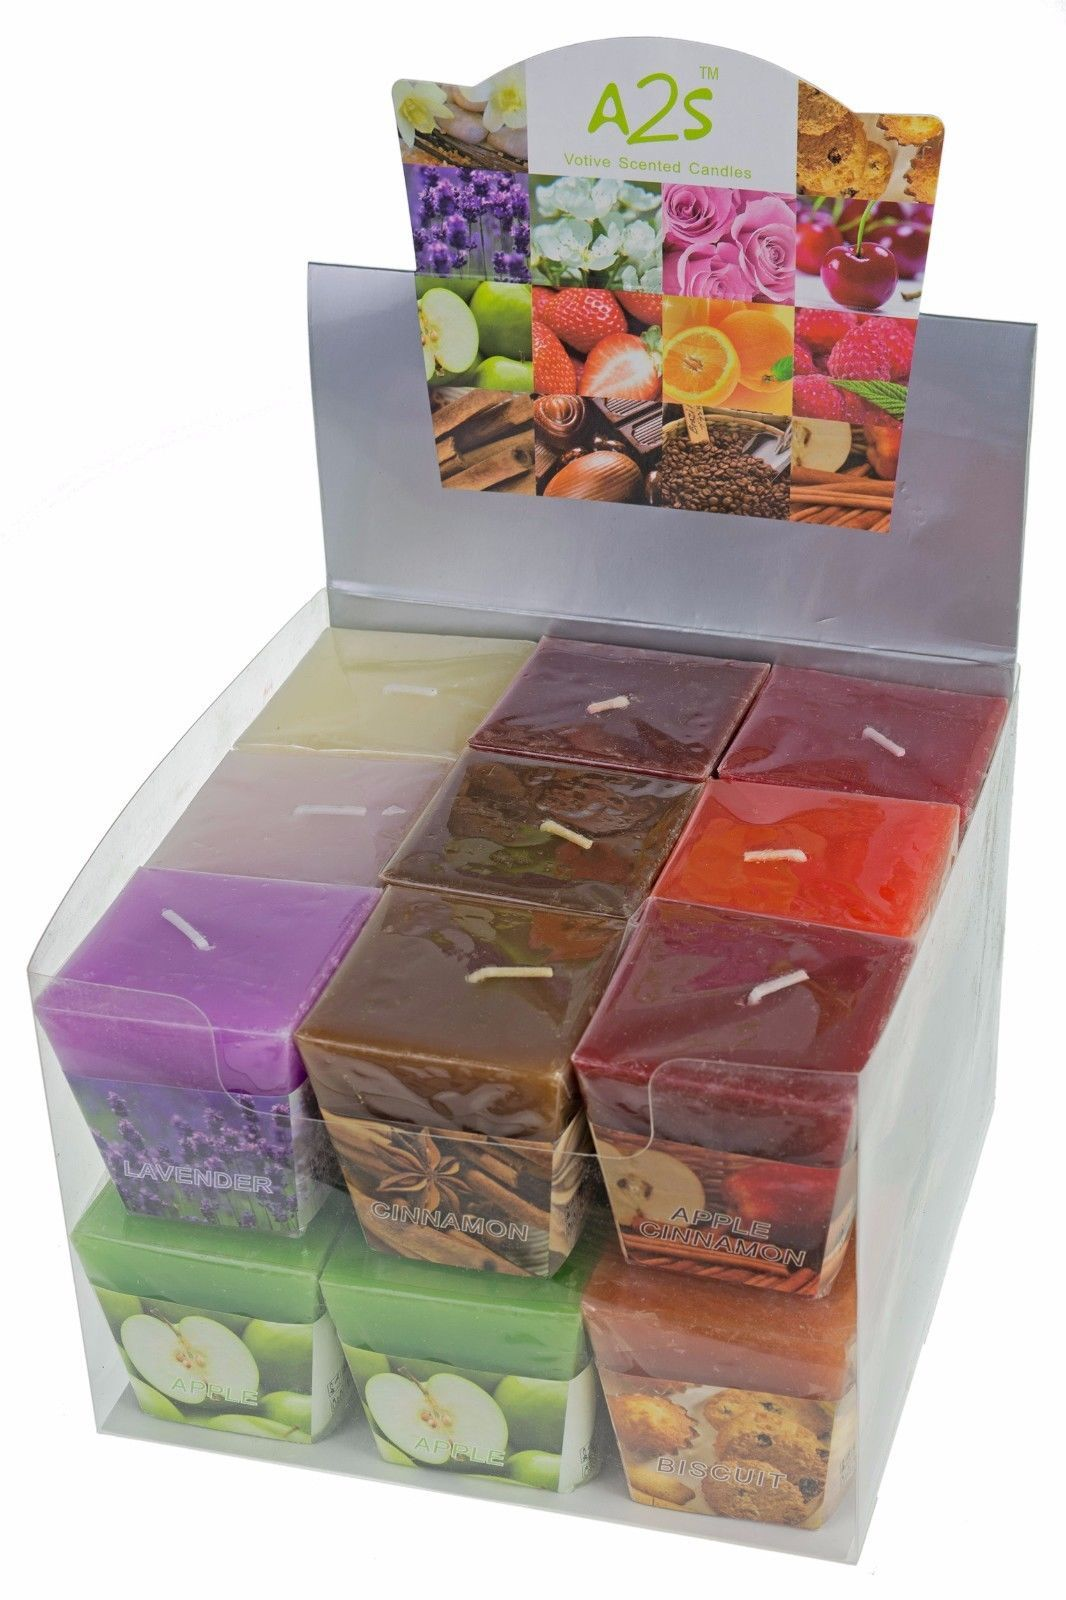 All2shop Scented Votive Candles Set of 18 Assorted Pure Scents for Relaxation